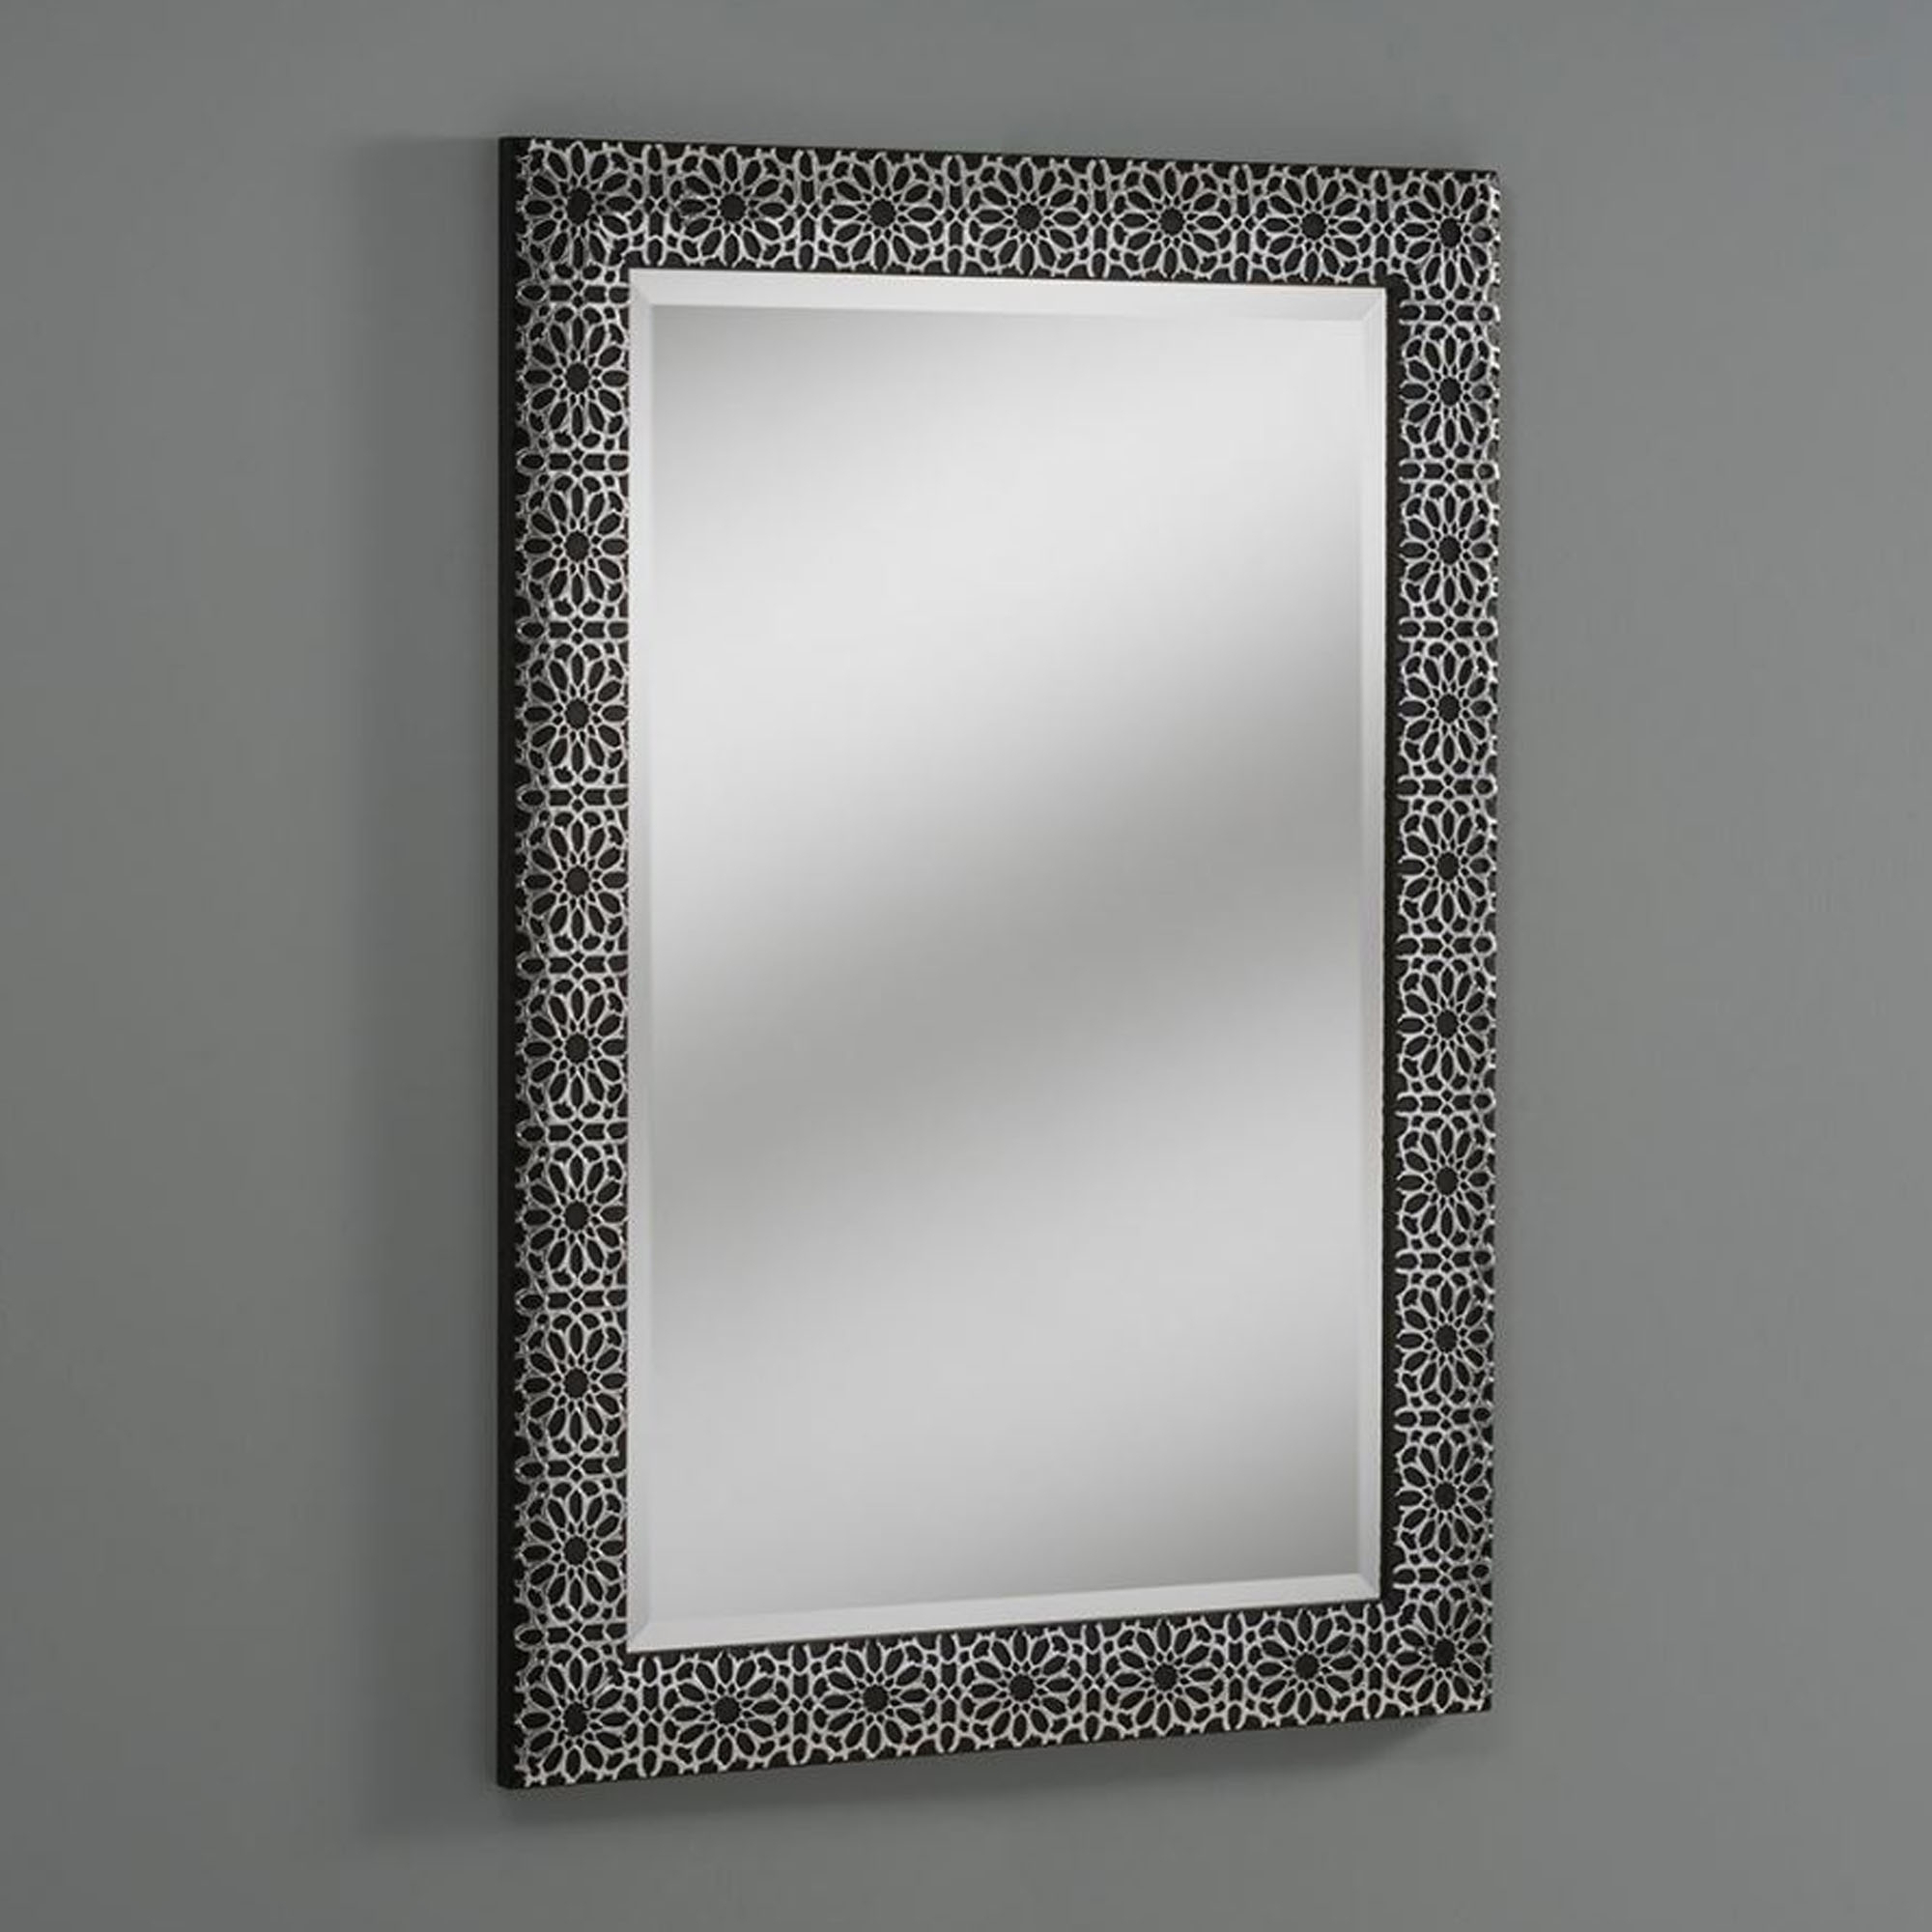 Newest Petal Black Decorative Wall Mirror In Decorative Black Wall Mirrors (Gallery 15 of 20)